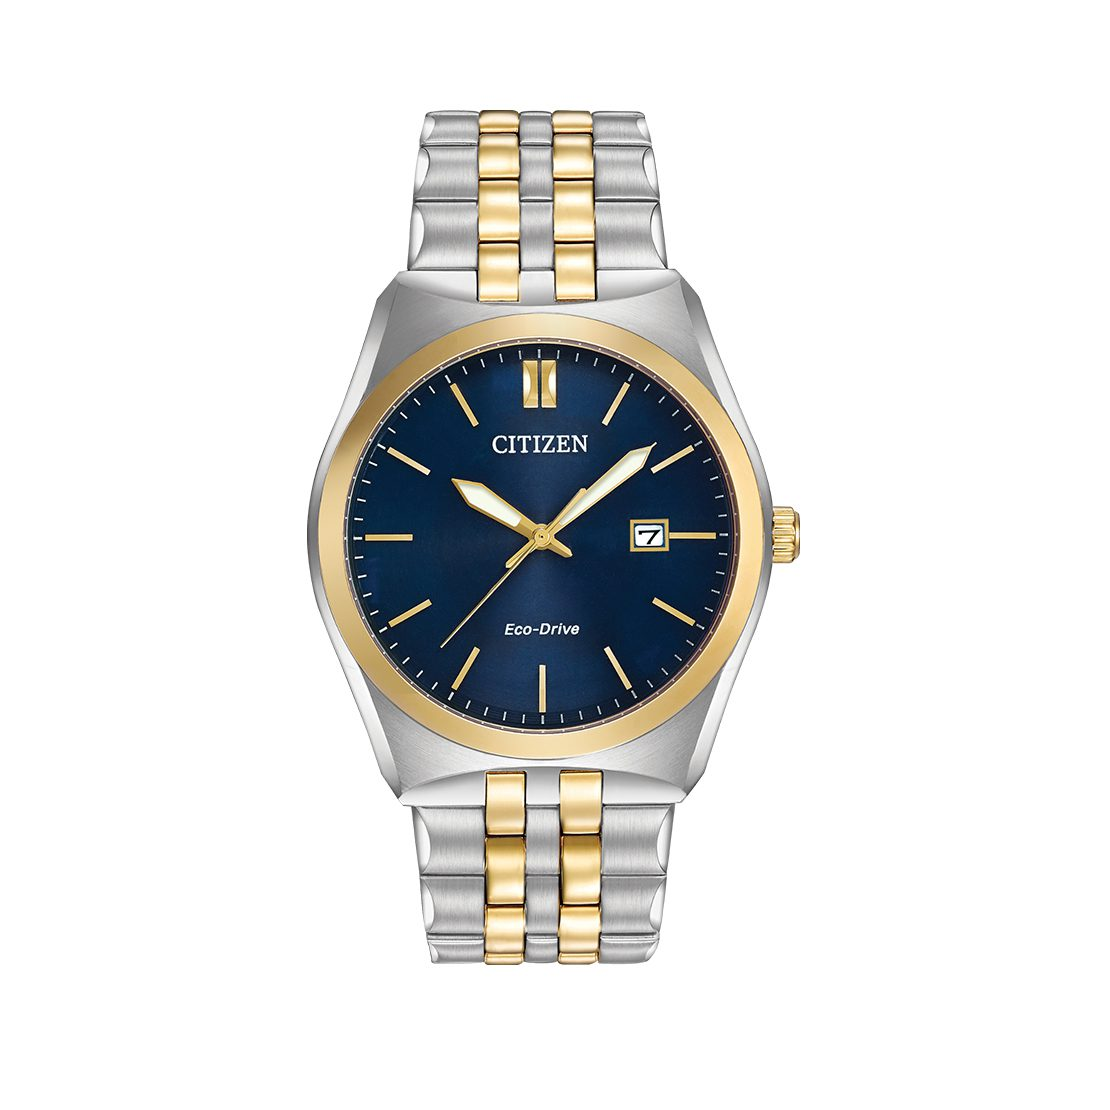 Men's Citizen Watch two-tone stainless steel with a deep blue dial